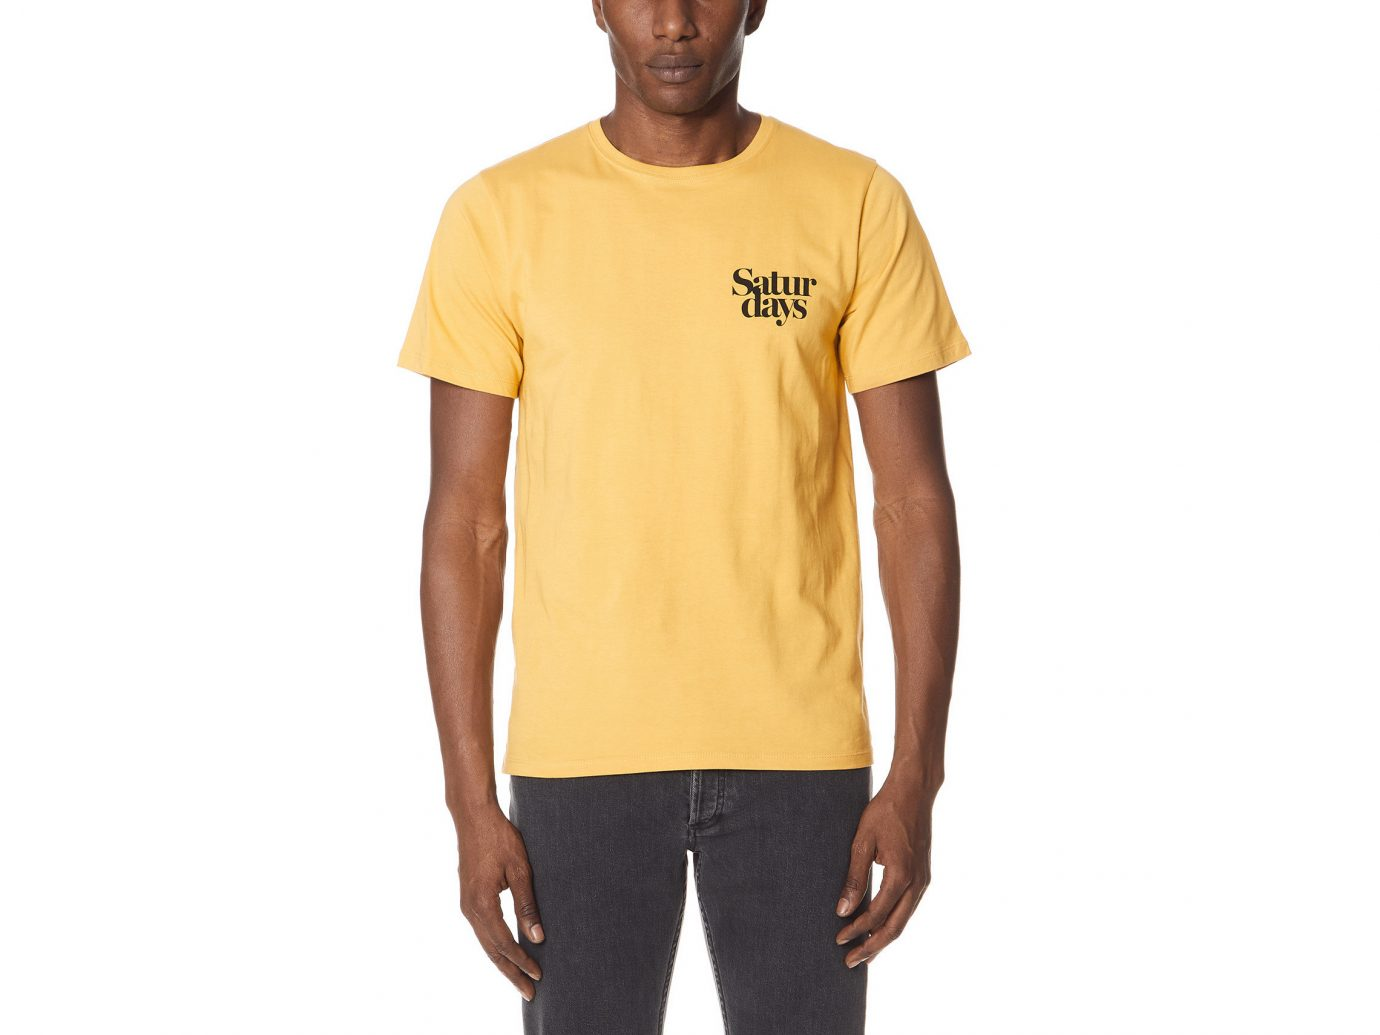 bcea9fff Spring Travel Style + Design Summer Travel Travel Shop man person t shirt  yellow standing sleeve